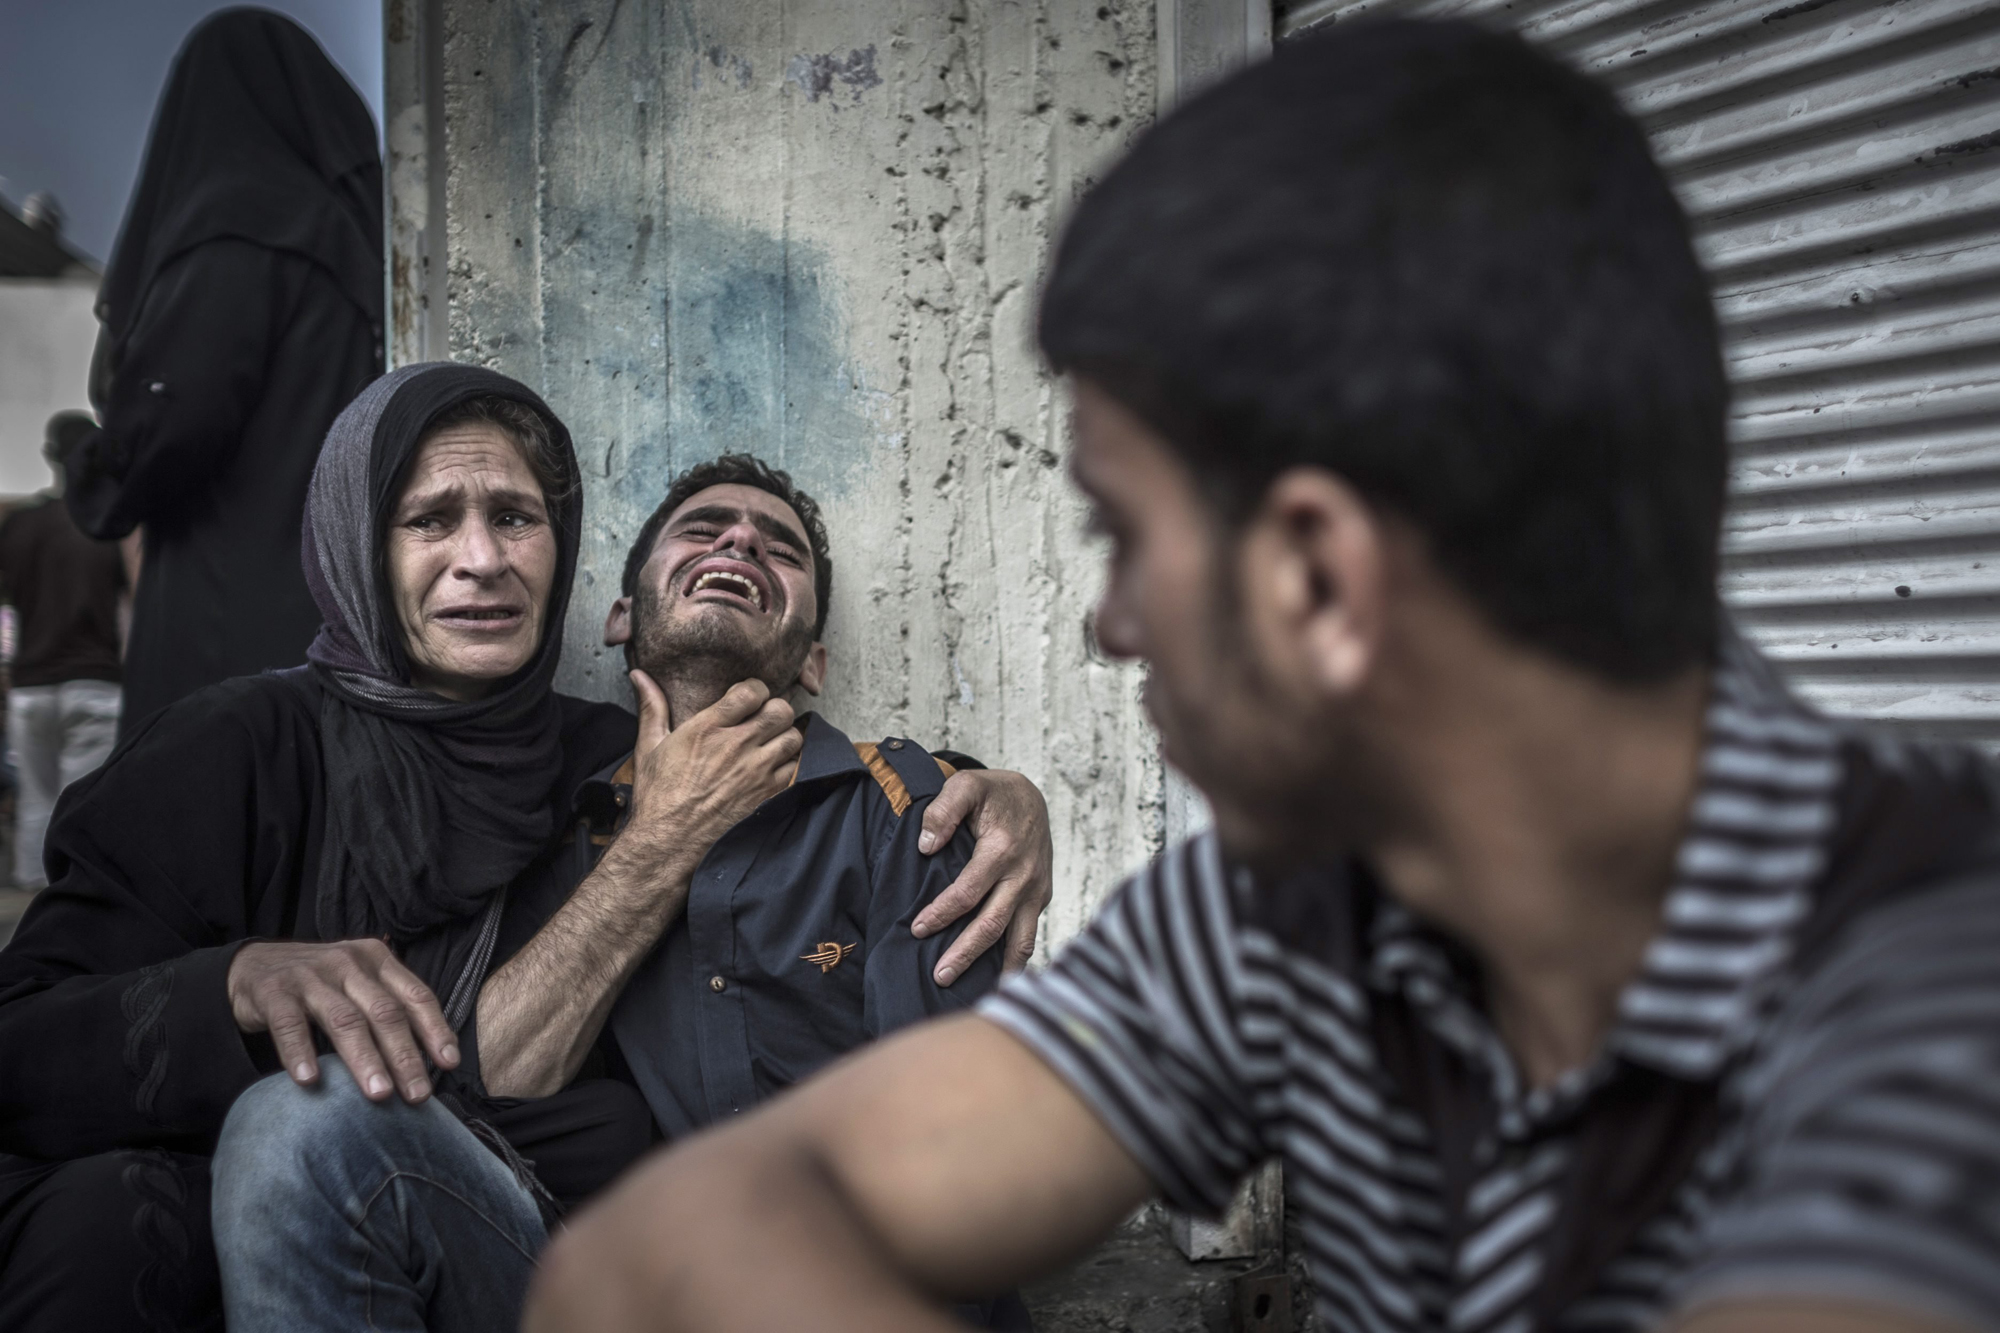 Palestinians mourn the death of a relative, who died when a UN school used as a shelter for internally displace people came under Israeli shelling in the Kamal Adwan hospital in Beit Lahia, northern Gaza Strip, July 30, 2014.